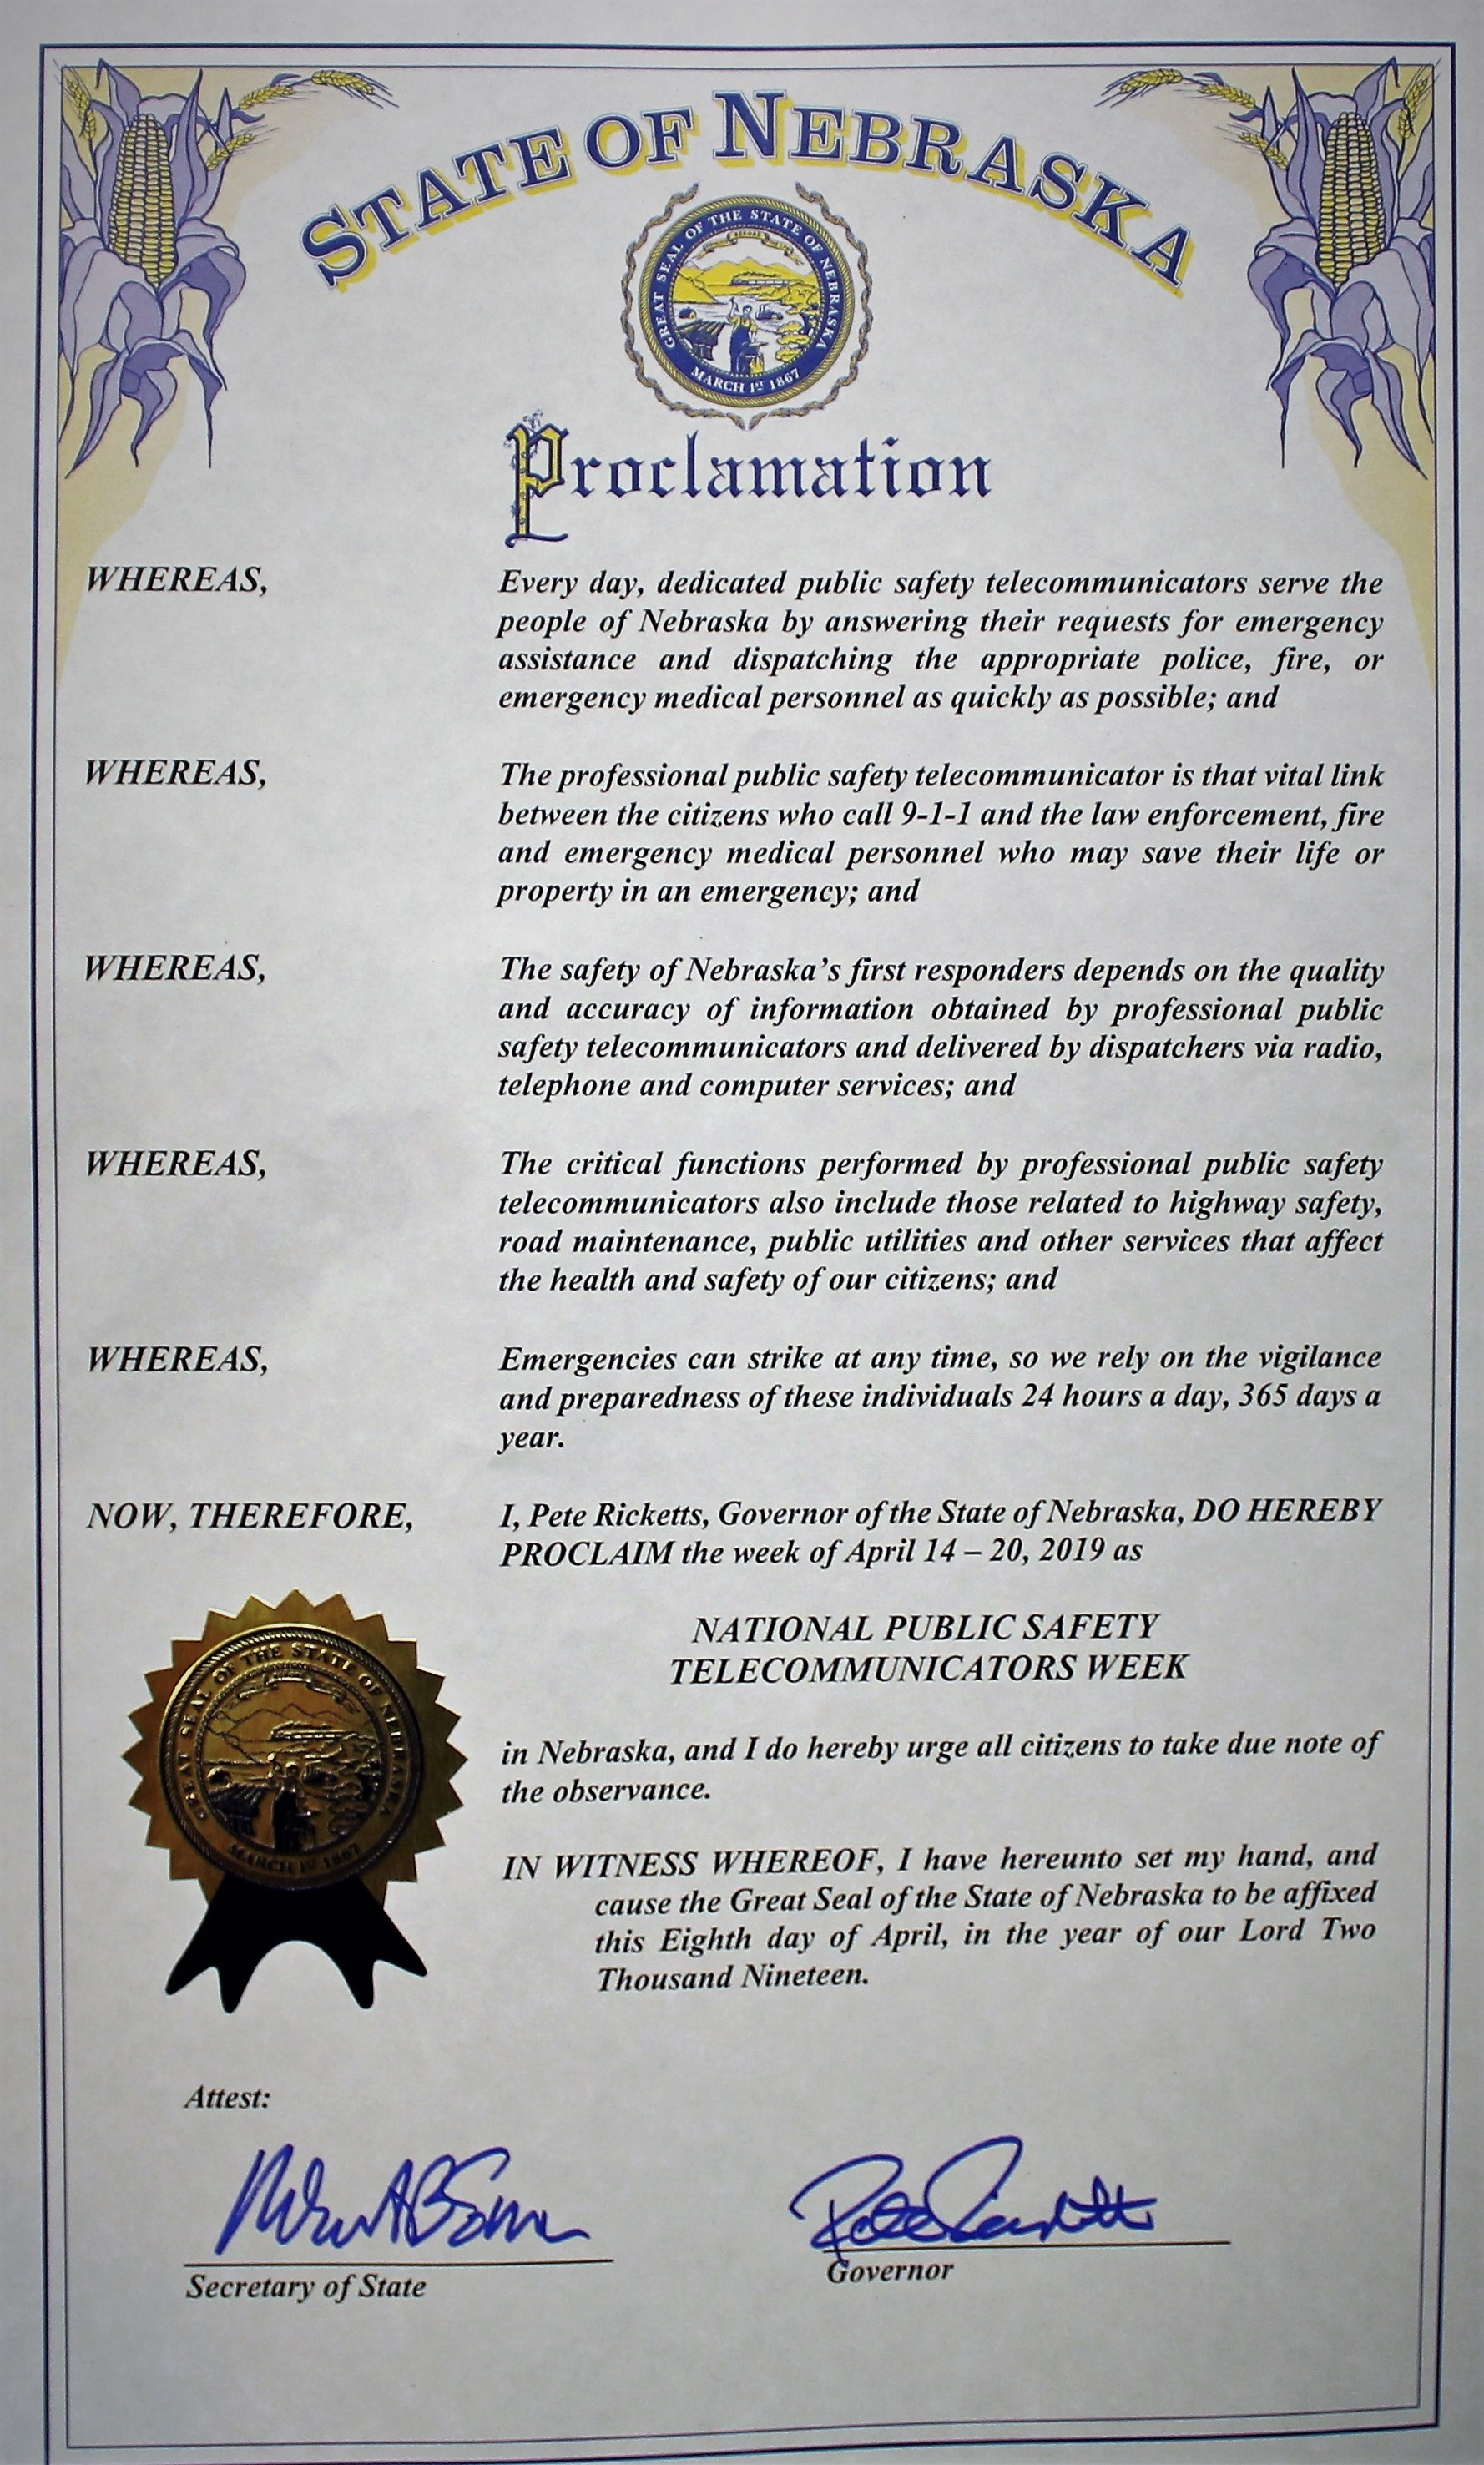 2019 Nat'l Public Safety Telecommunicators Week Proclamation